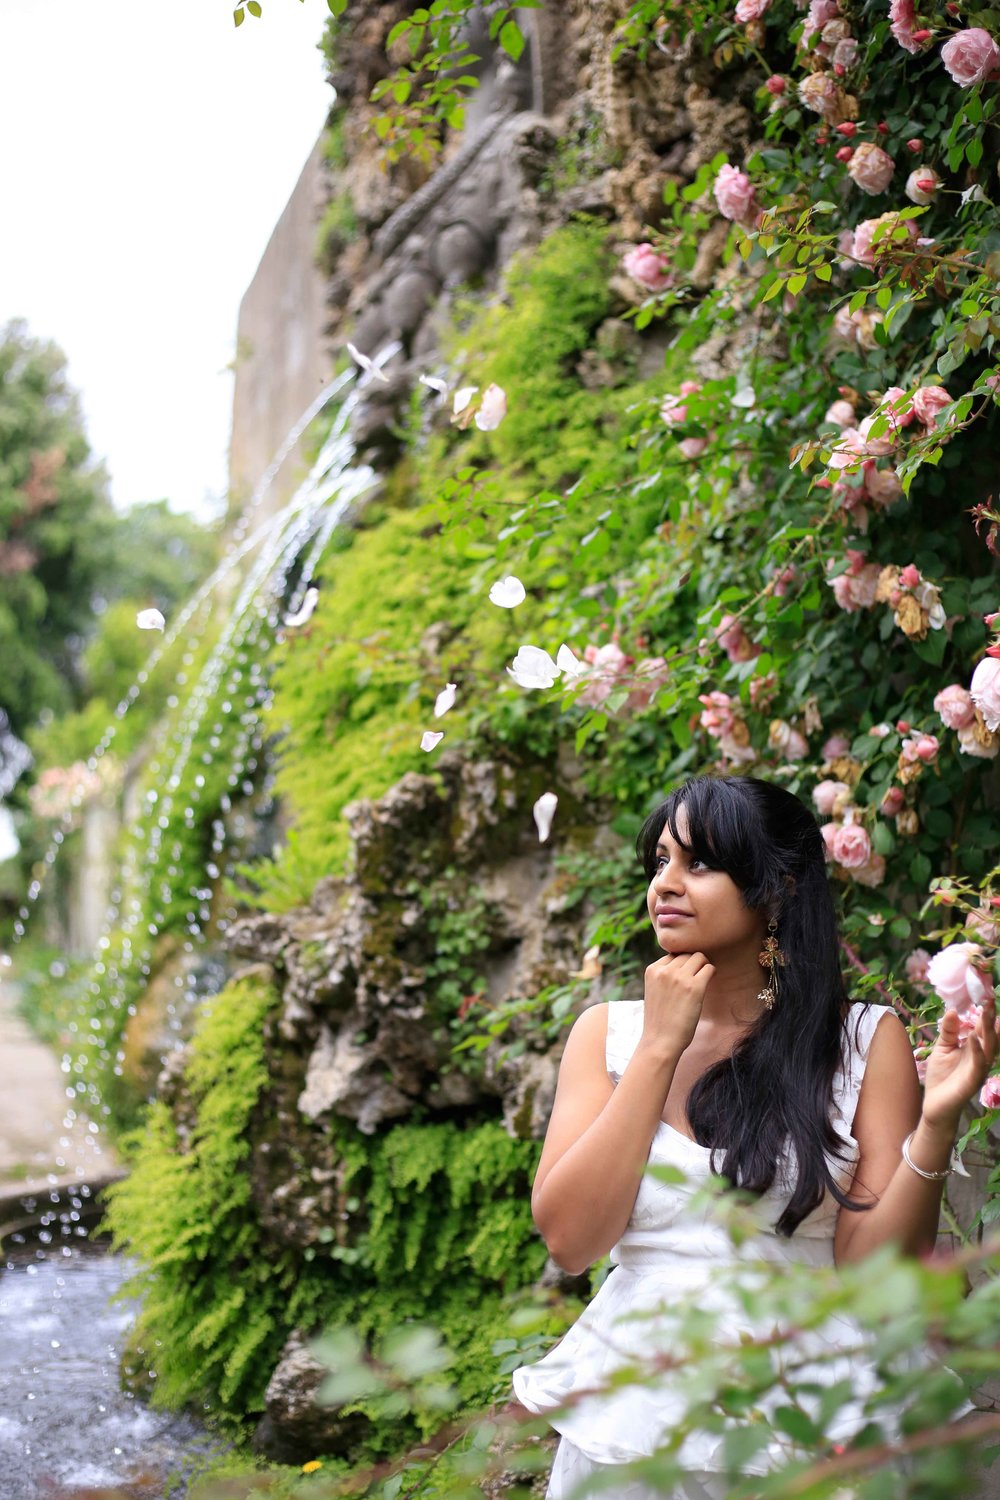 Just admiring the endless roses in Tivoli Gardens (Villa d'Este)